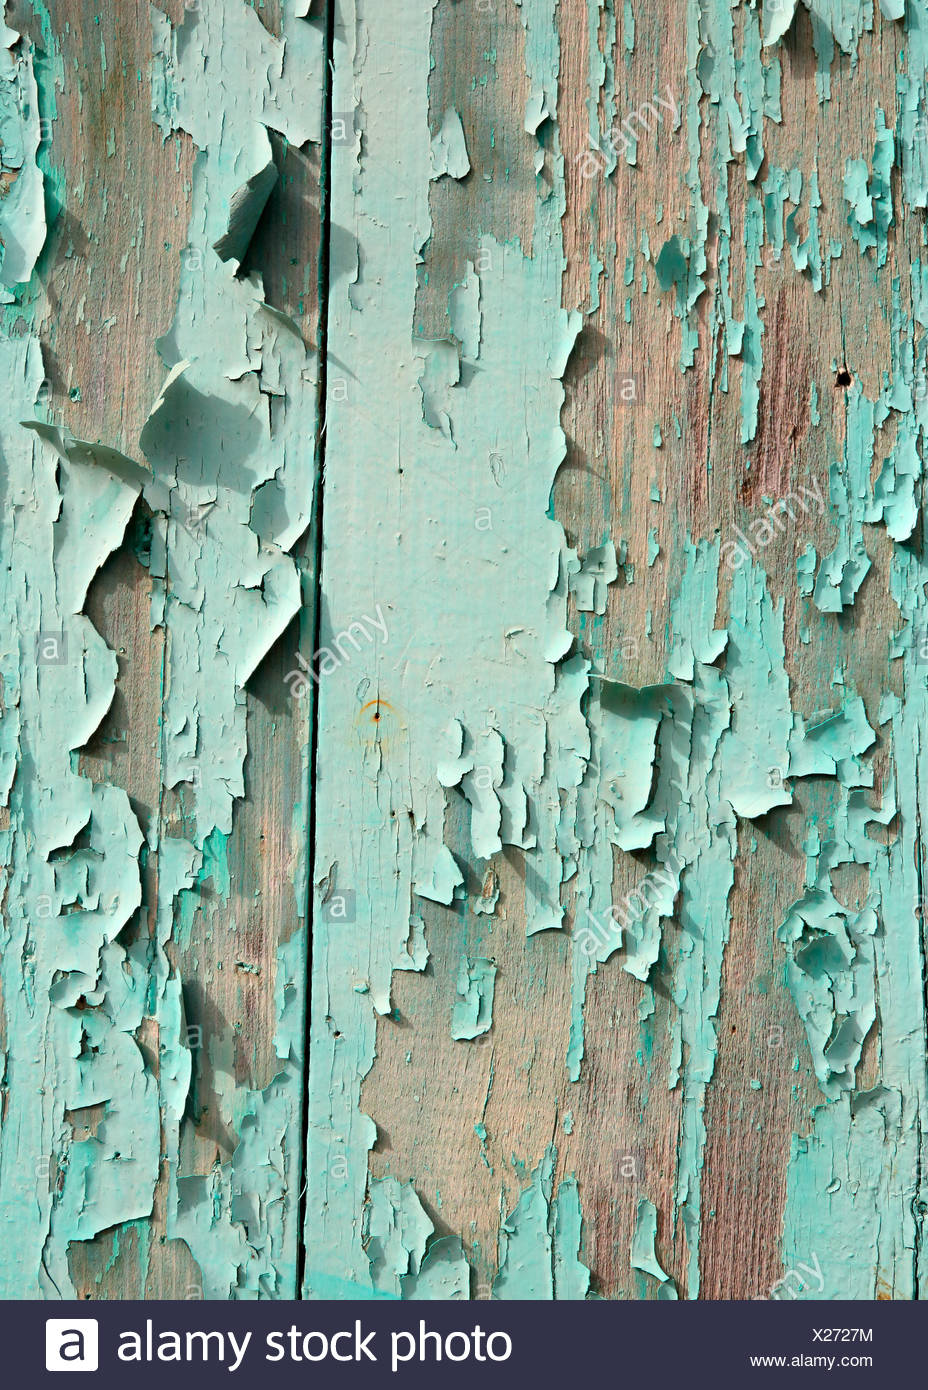 TURQUOISE PEELING PAINT ON WOOD BACKGROUND - Stock Image